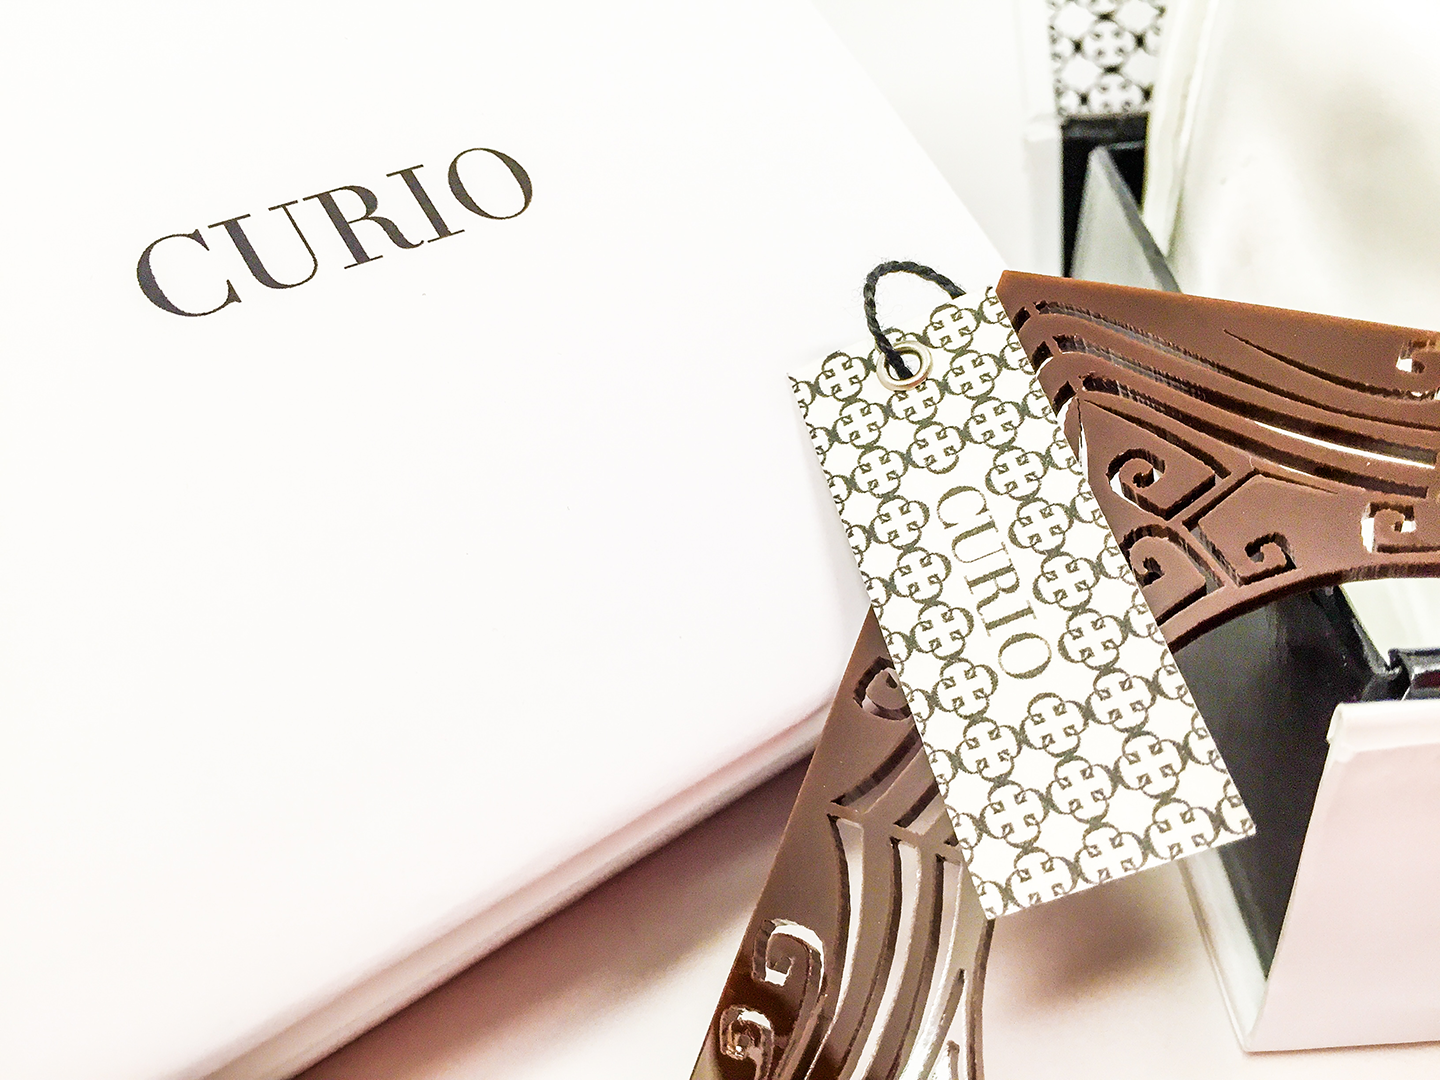 curio packaging img5